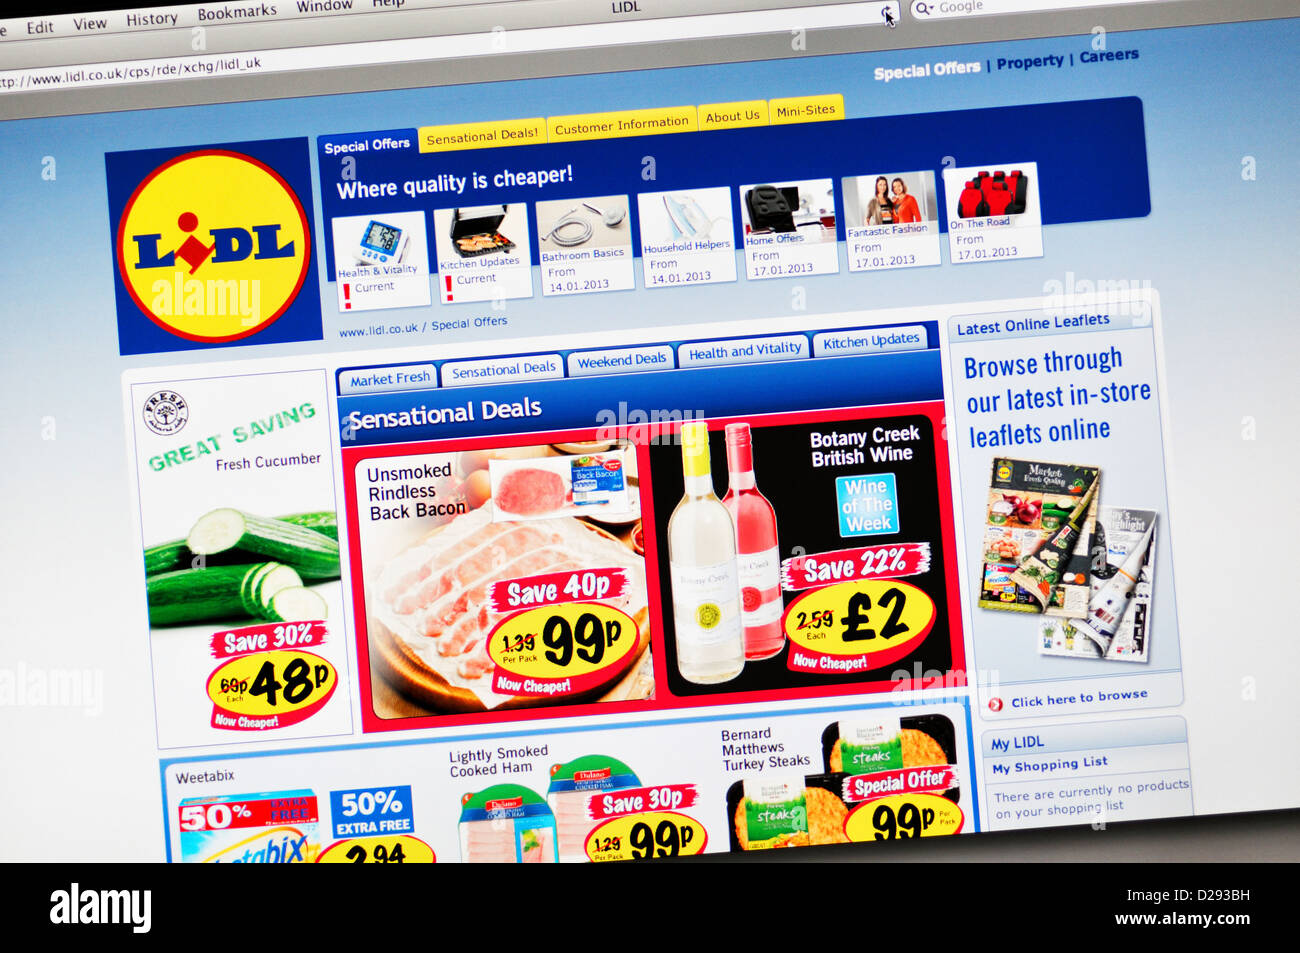 lidl england stock photos lidl england stock images alamy. Black Bedroom Furniture Sets. Home Design Ideas